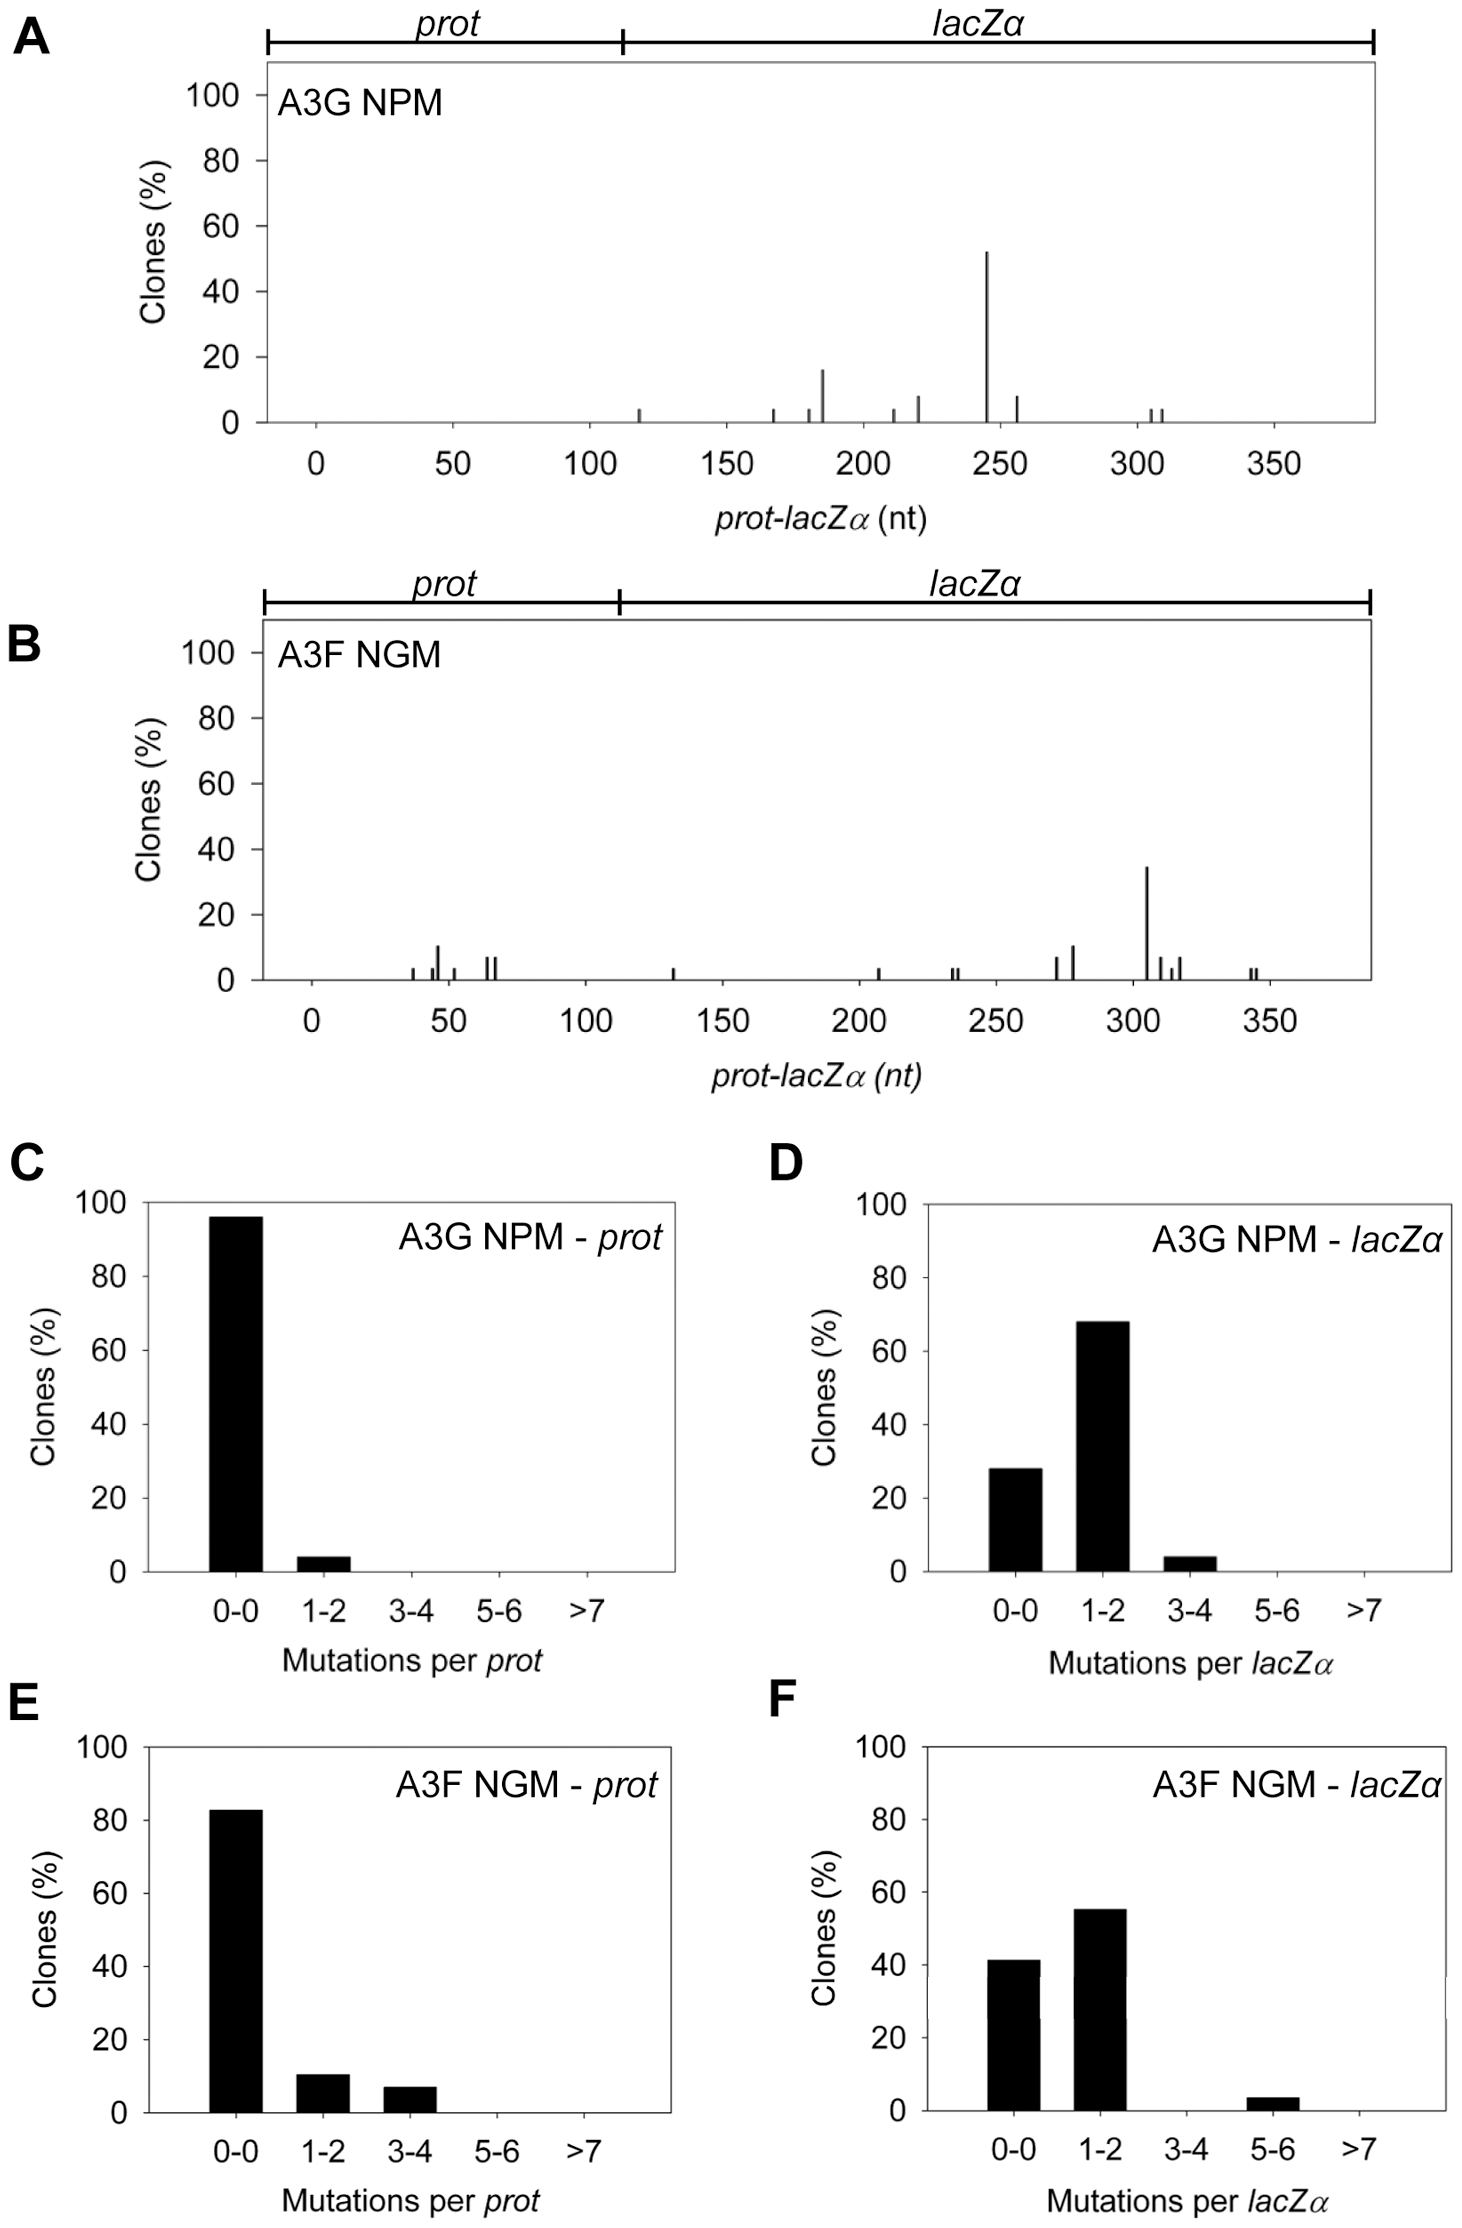 Cytosine deamination-induced mutagenesis by mutant A3G and A3F in a model HIV replication system.